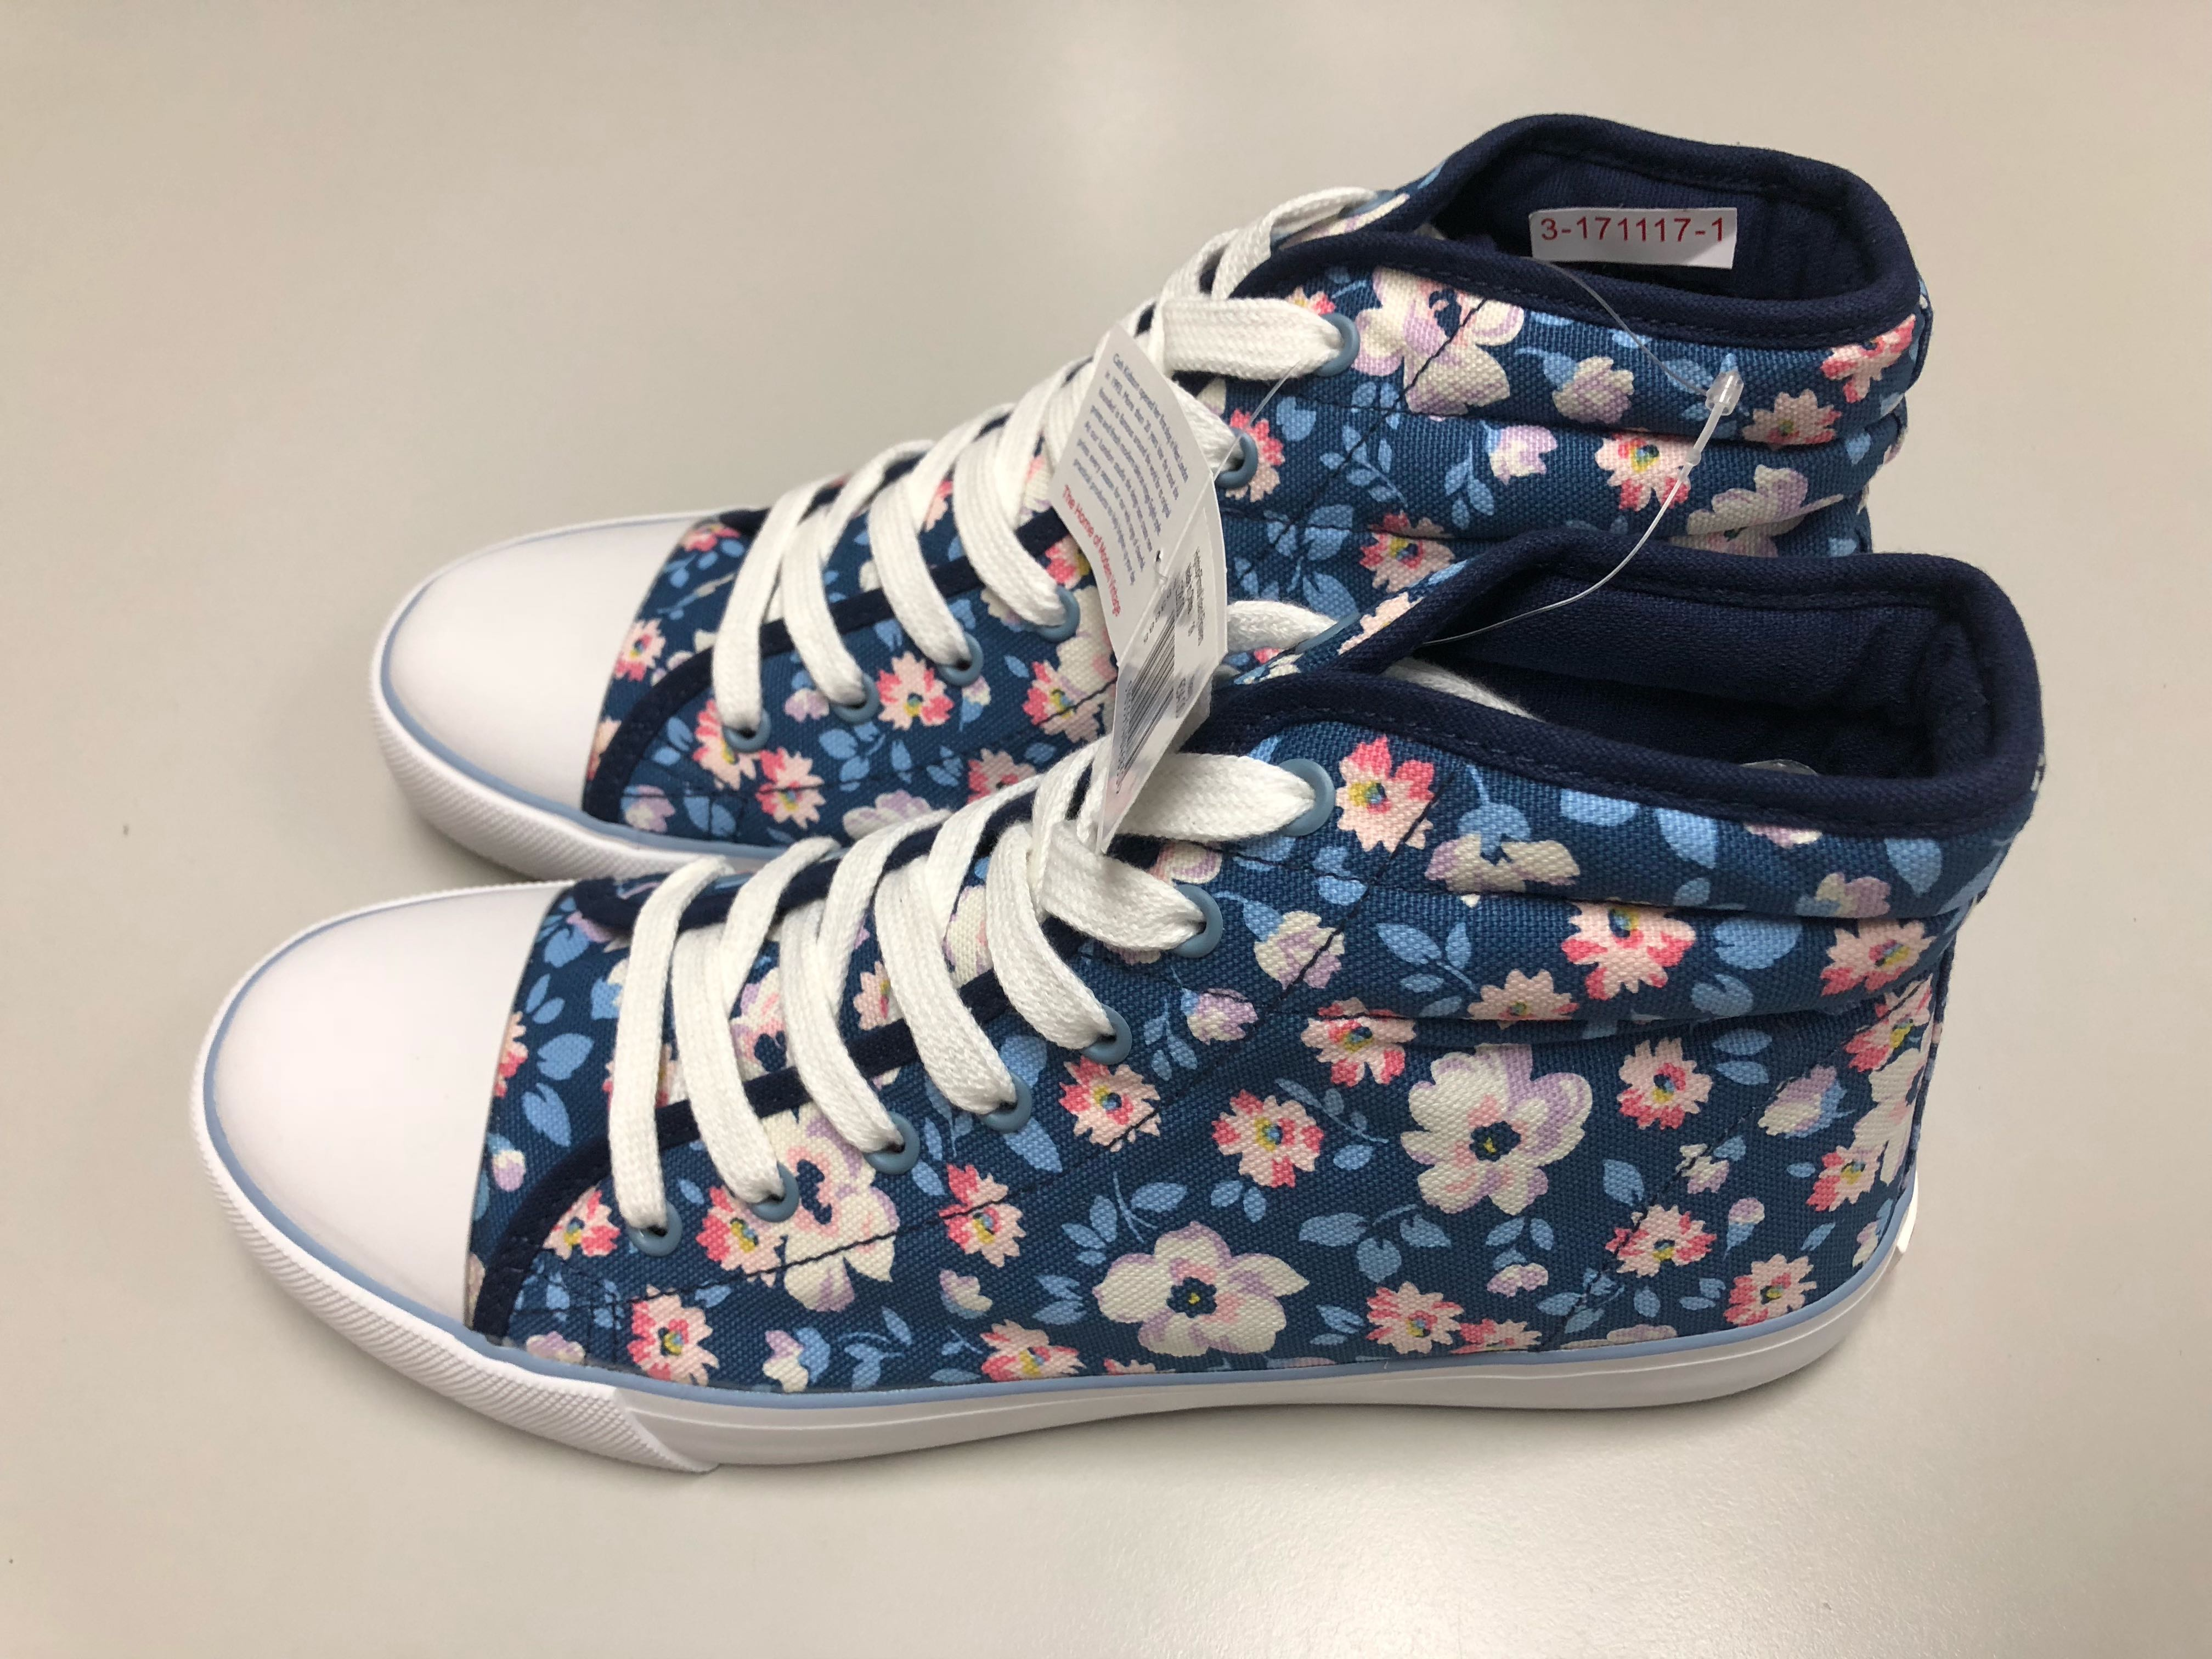 Ladies Cath Kidston Shoes Plimsoles Slip On Shoes New Size 7 Clearance Price Comfort Shoes Clothing, Shoes & Accessories